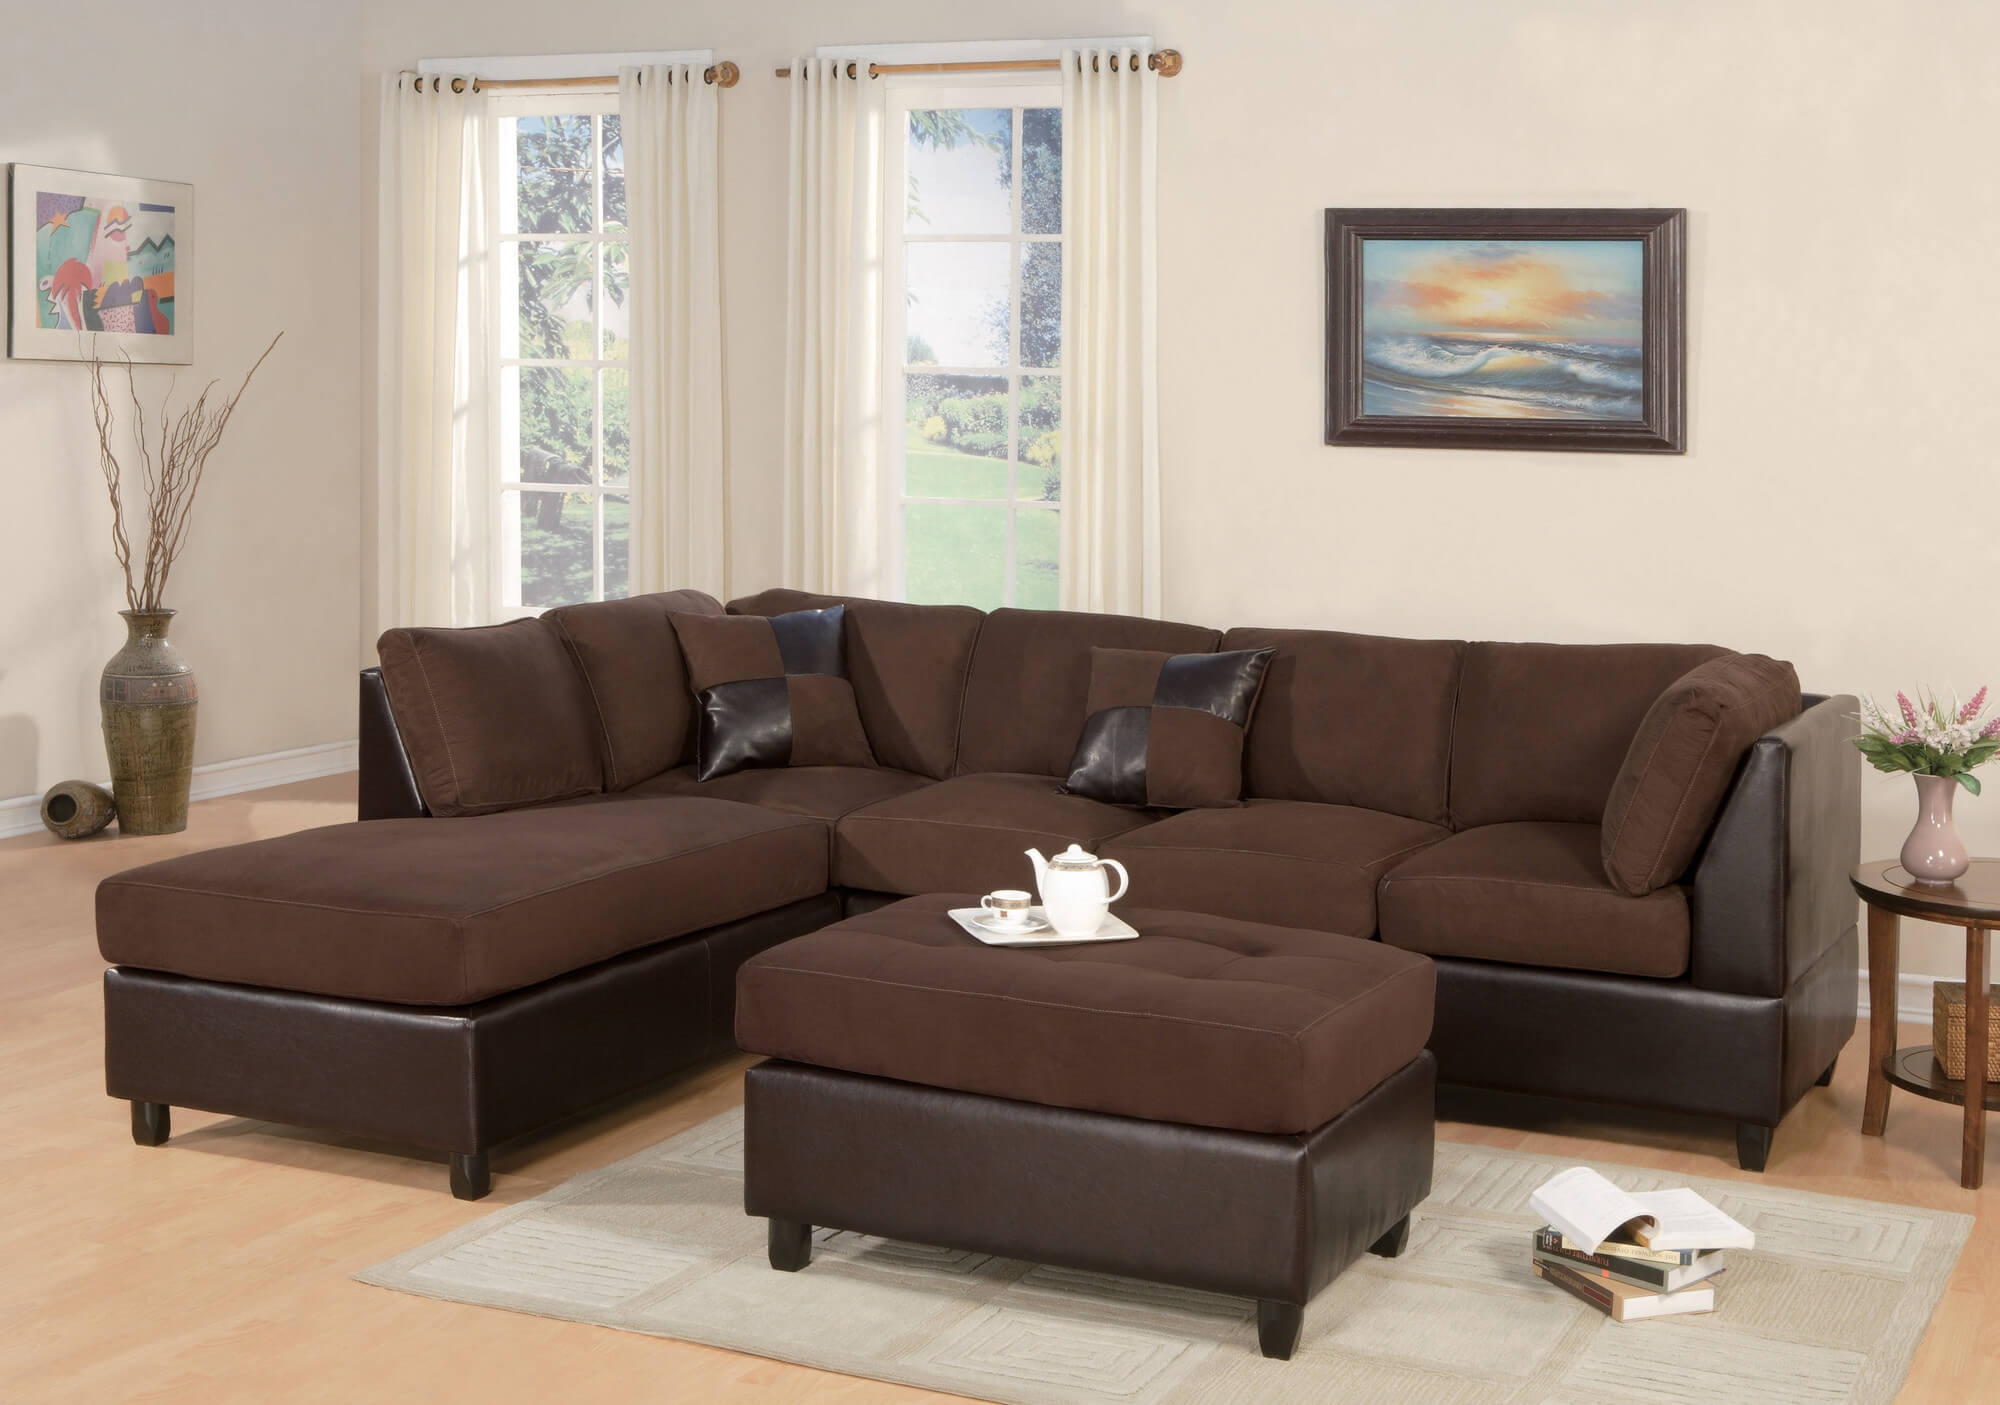 Furniture Big Lots Sectional Big Lots Loveseat Simmons Sofa Within Big Lots Sofas (Image 8 of 15)